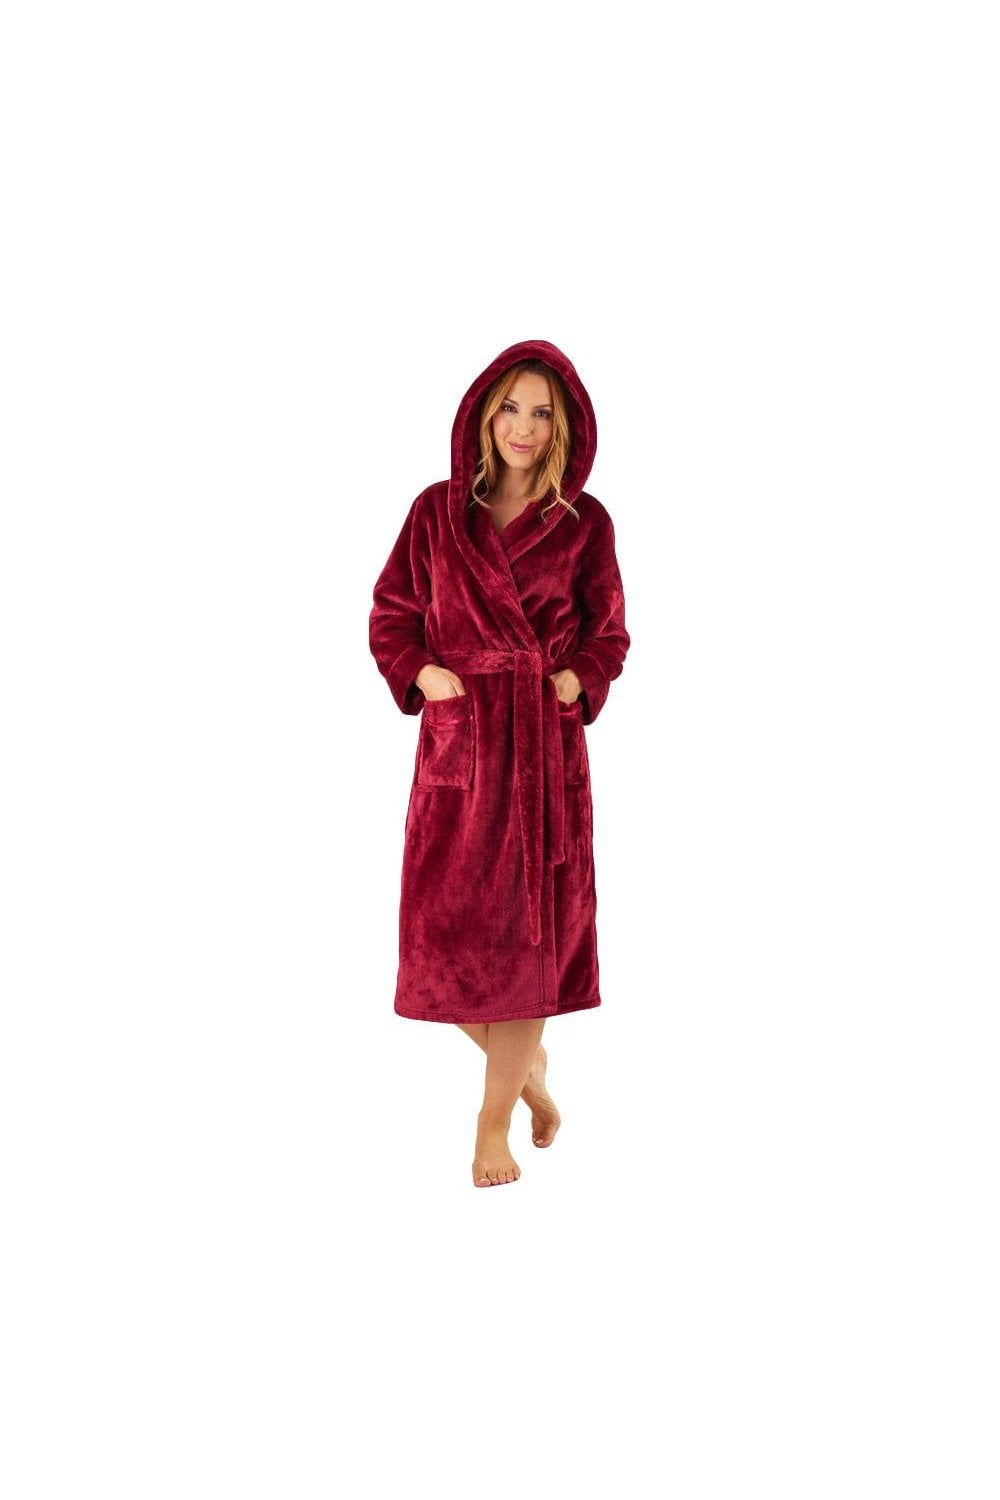 4f7947b678d0 Slenderella Luxury Fleece Hooded Dressing Gown - Raspberry - Nightwear    Robes from Potters of Buxton UK